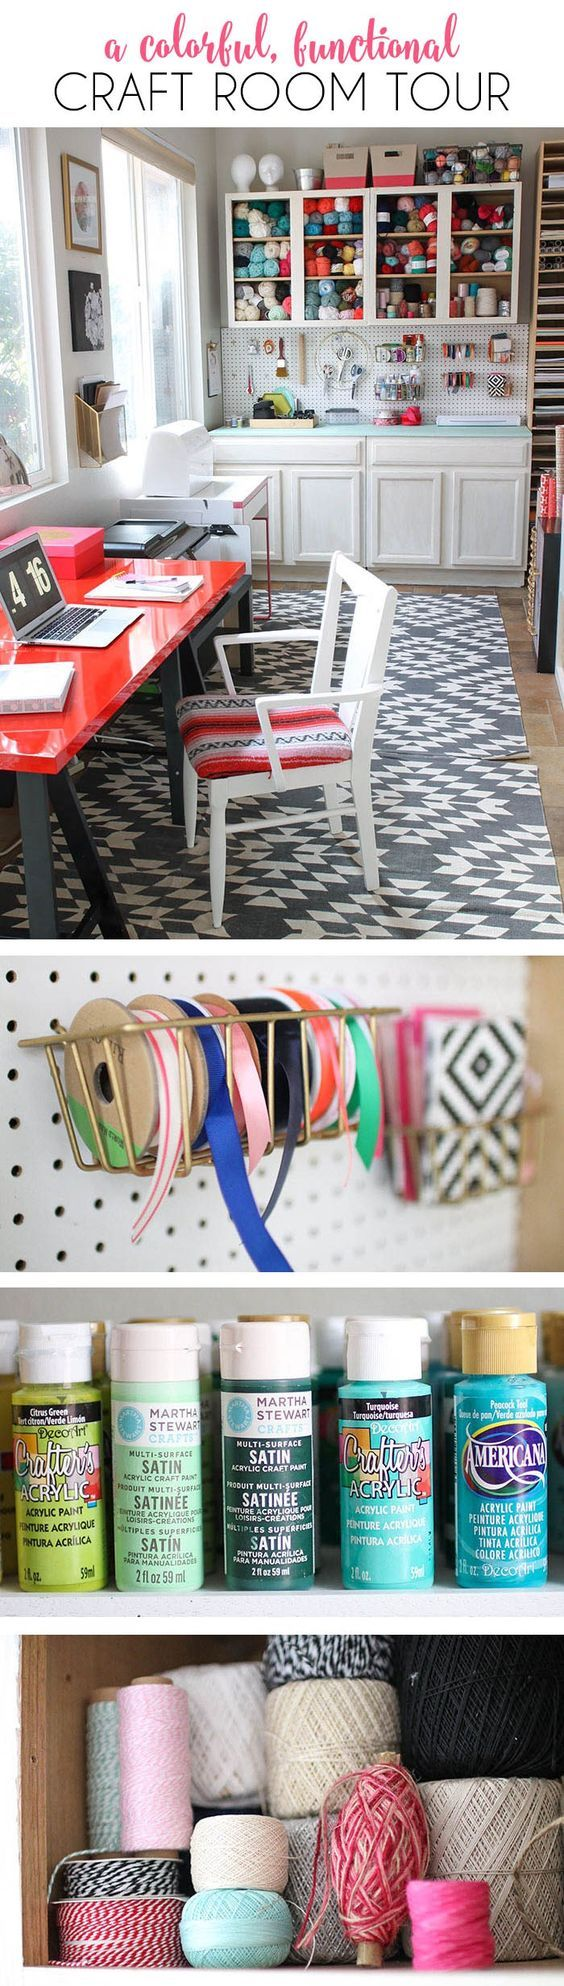 A colorful and functional craft room - lots of fun storage ideas!